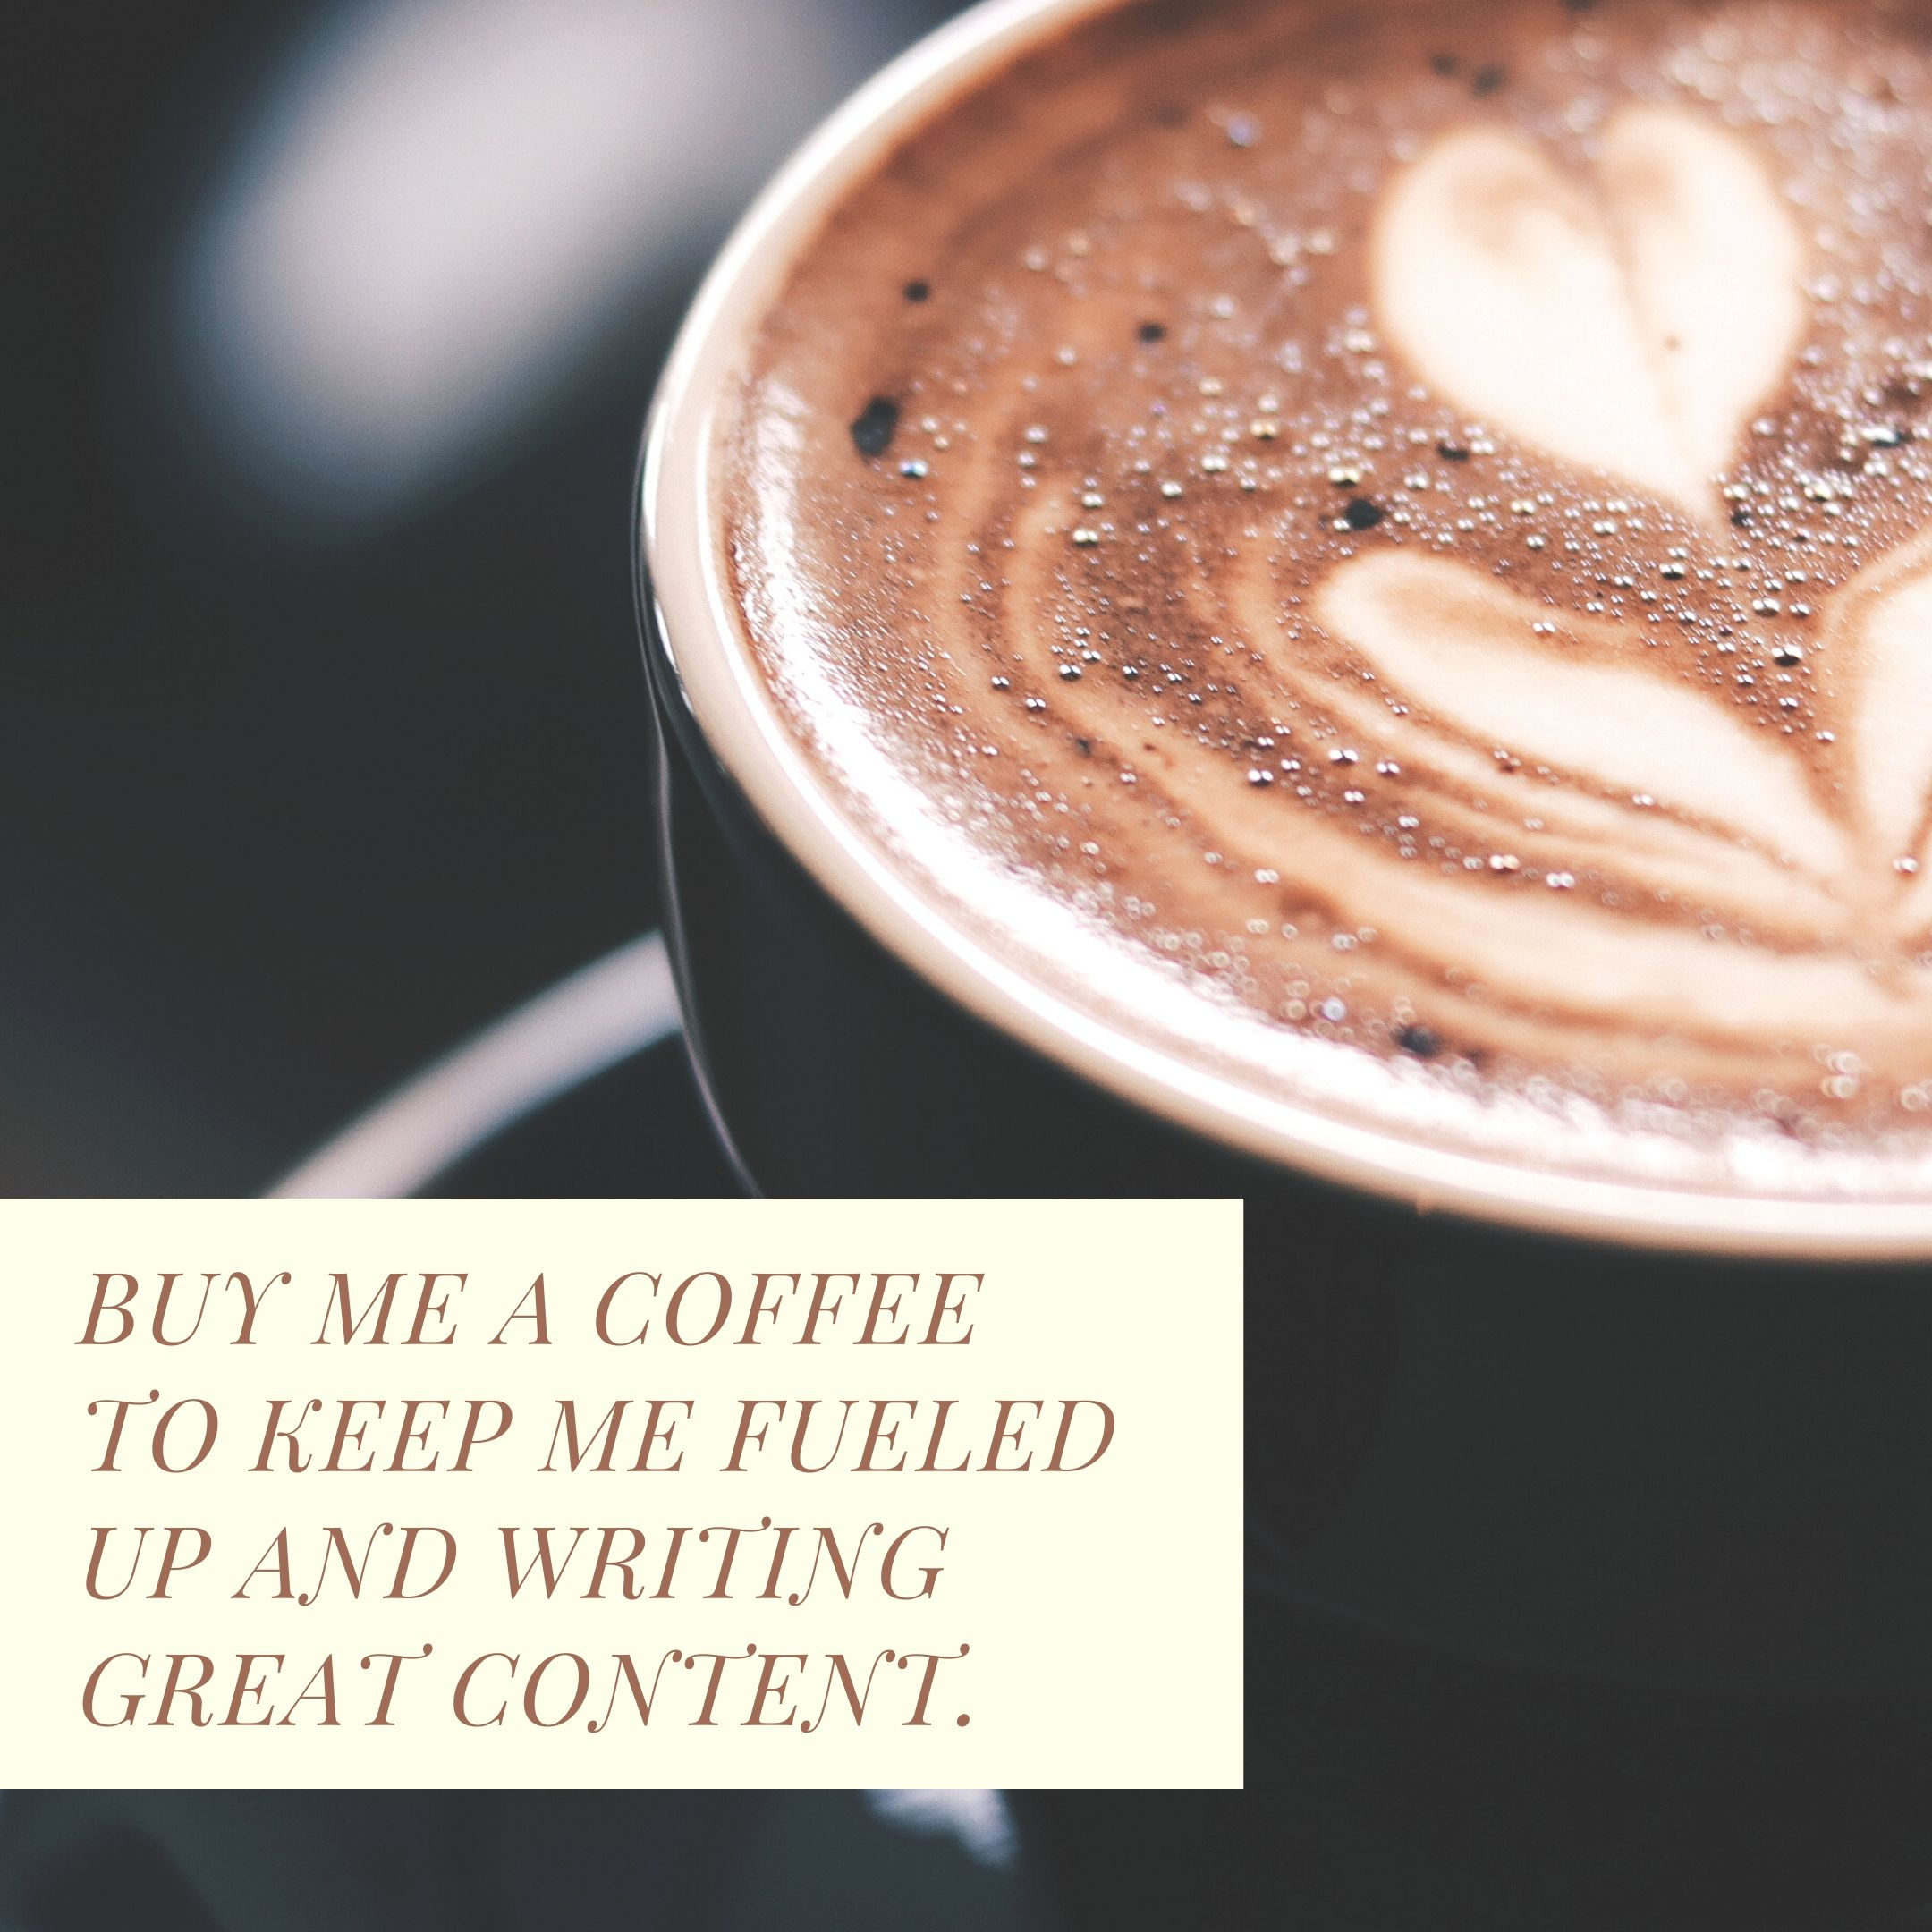 Buy me a coffee?